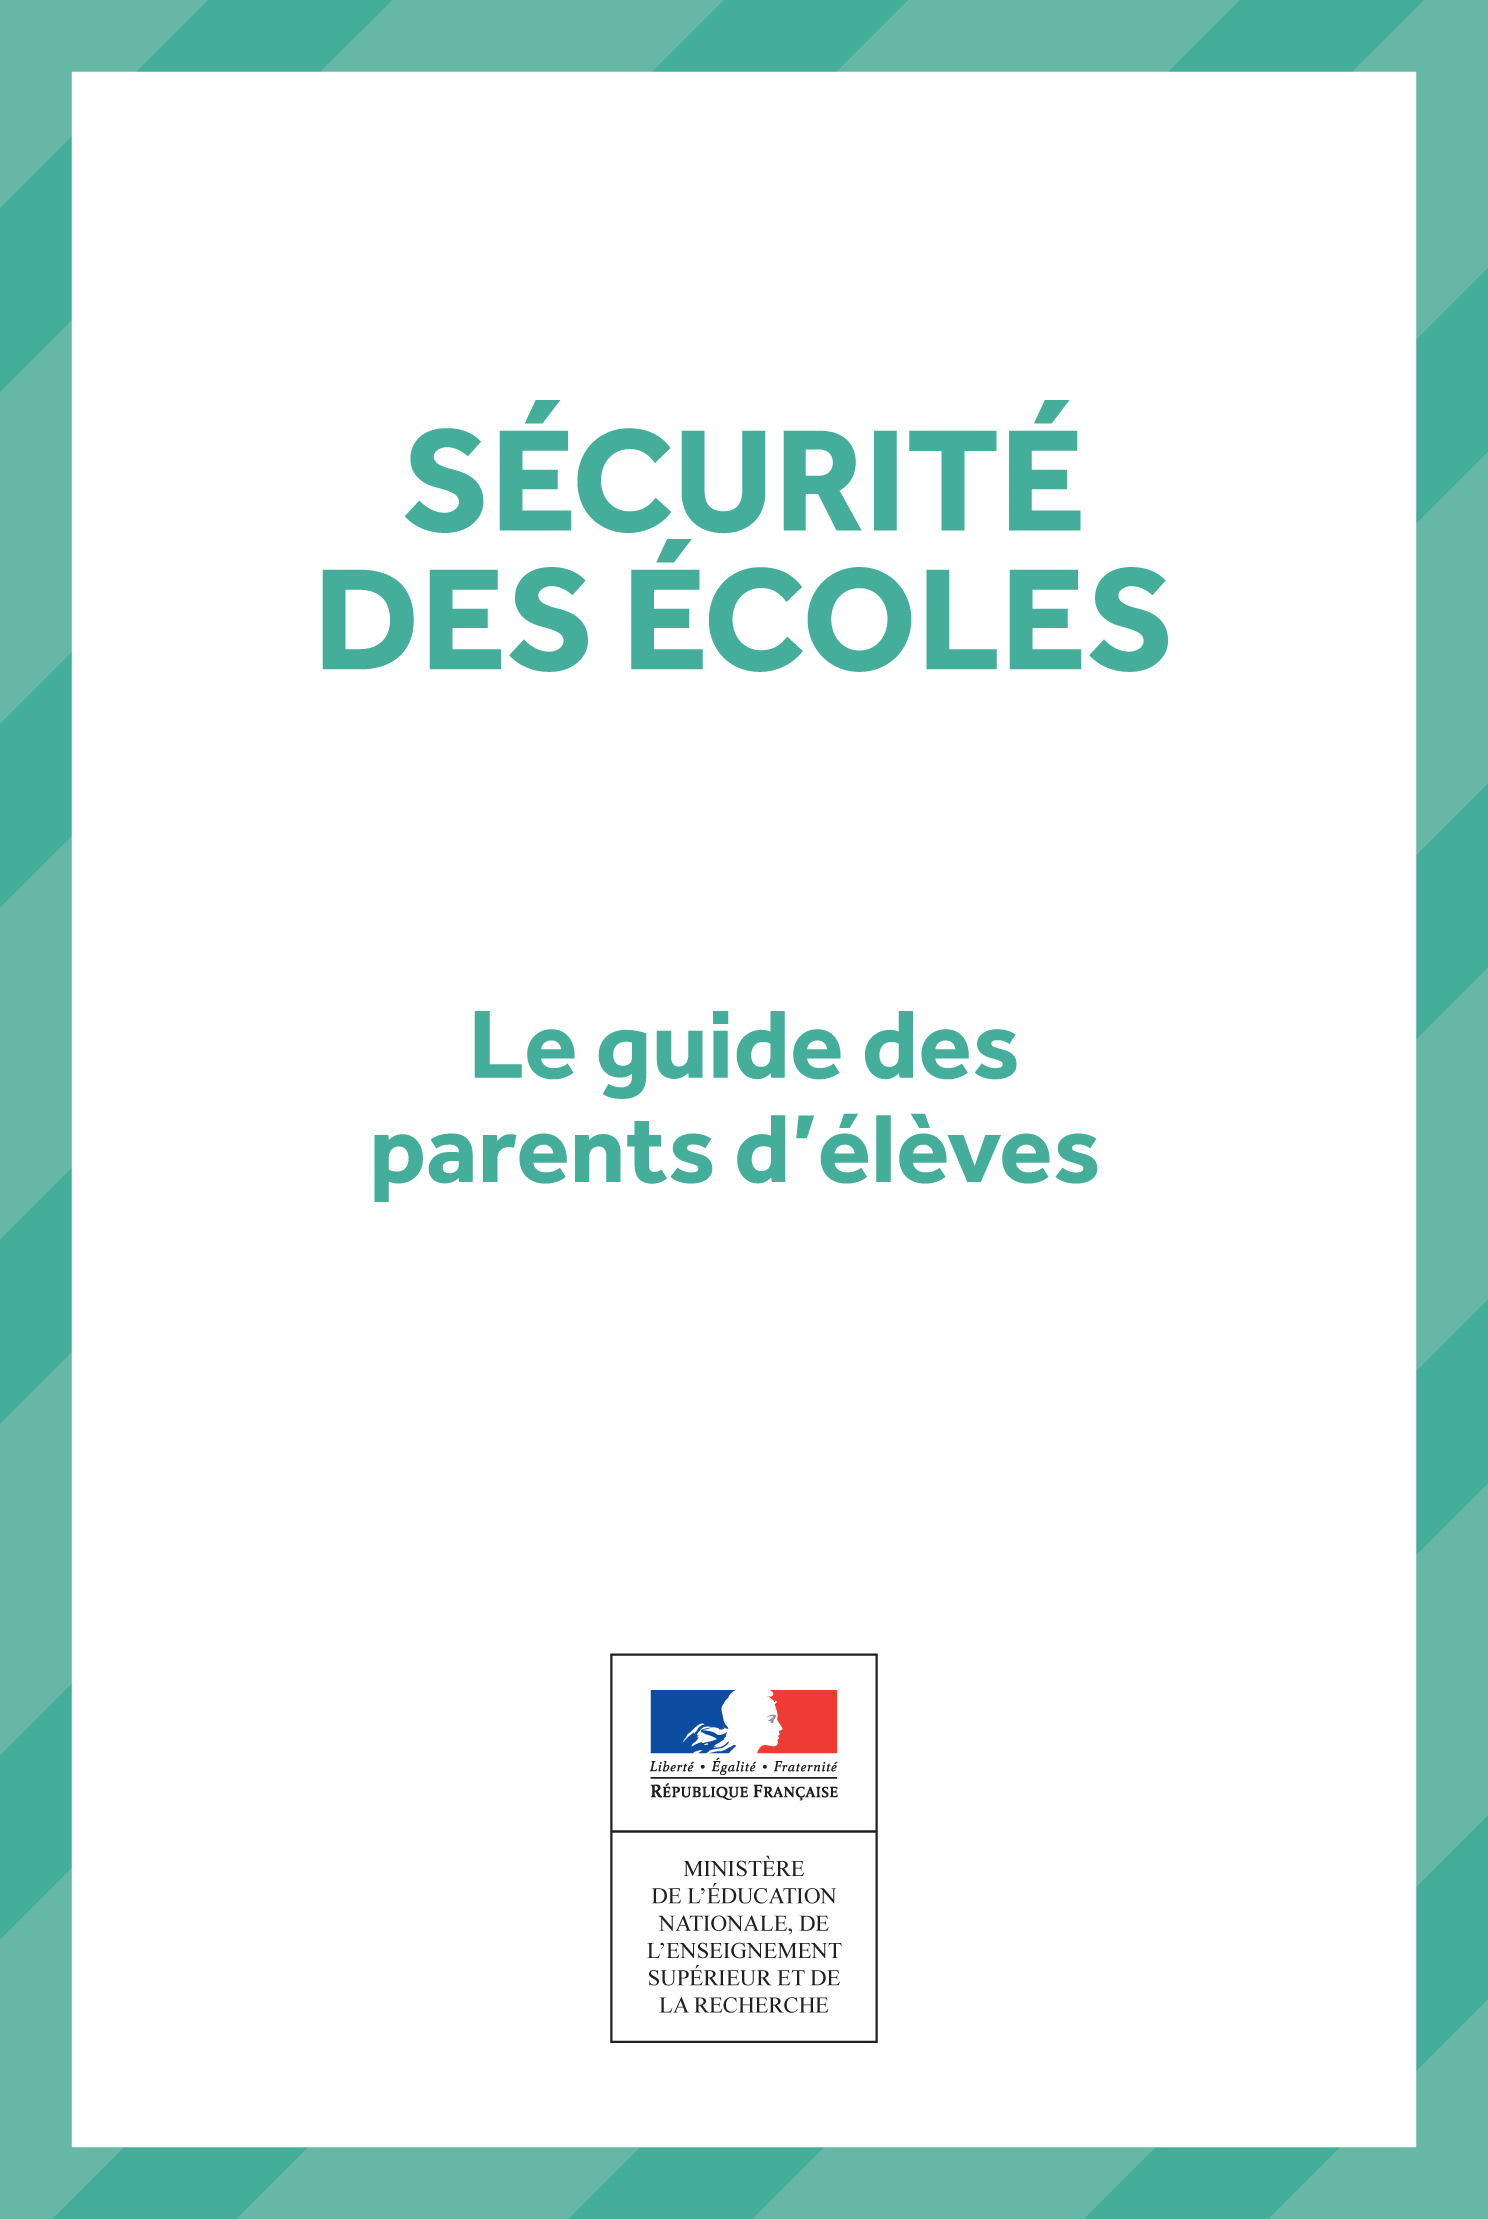 2016_securite_guide_ecole_p